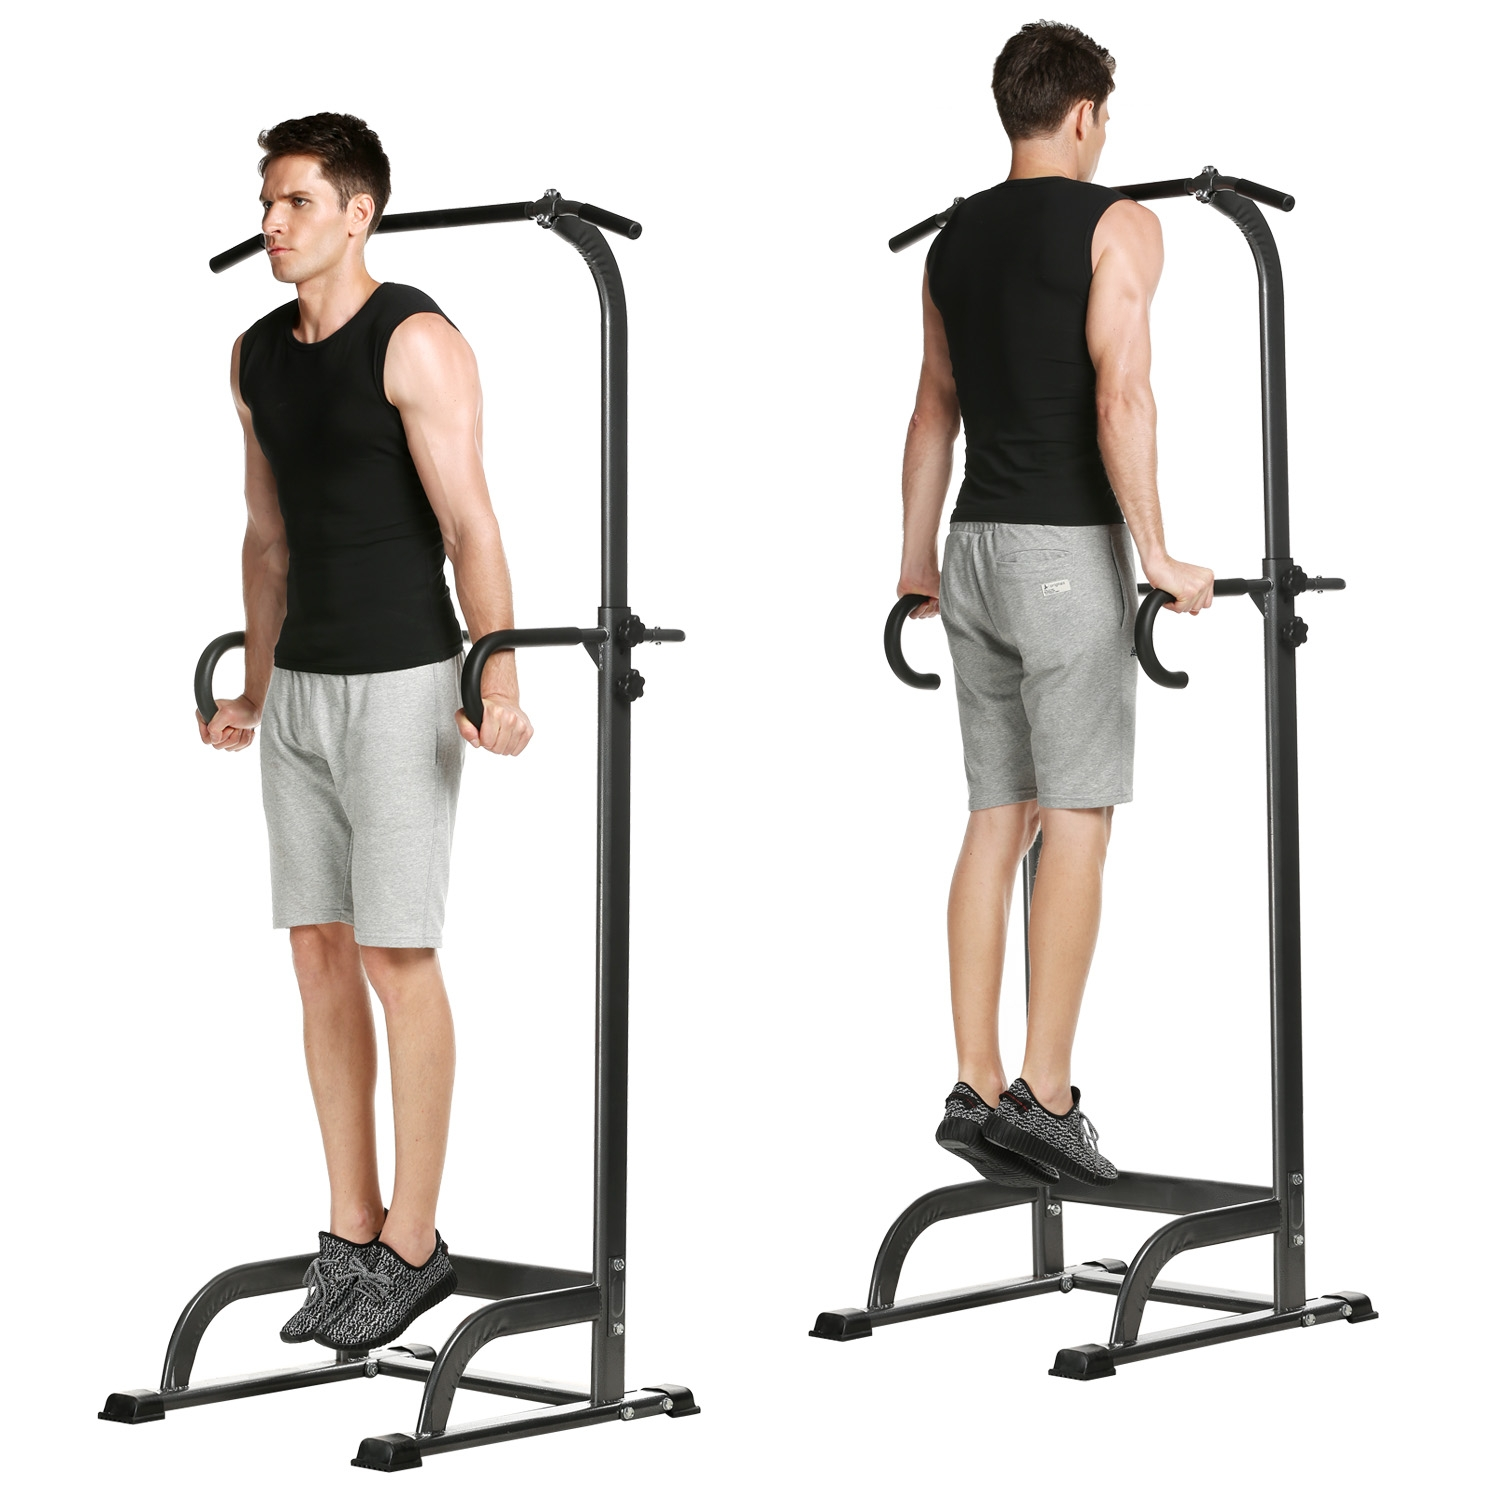 Adjustable New Power Tower Indoor Home Chin Up Pull Up Ba...